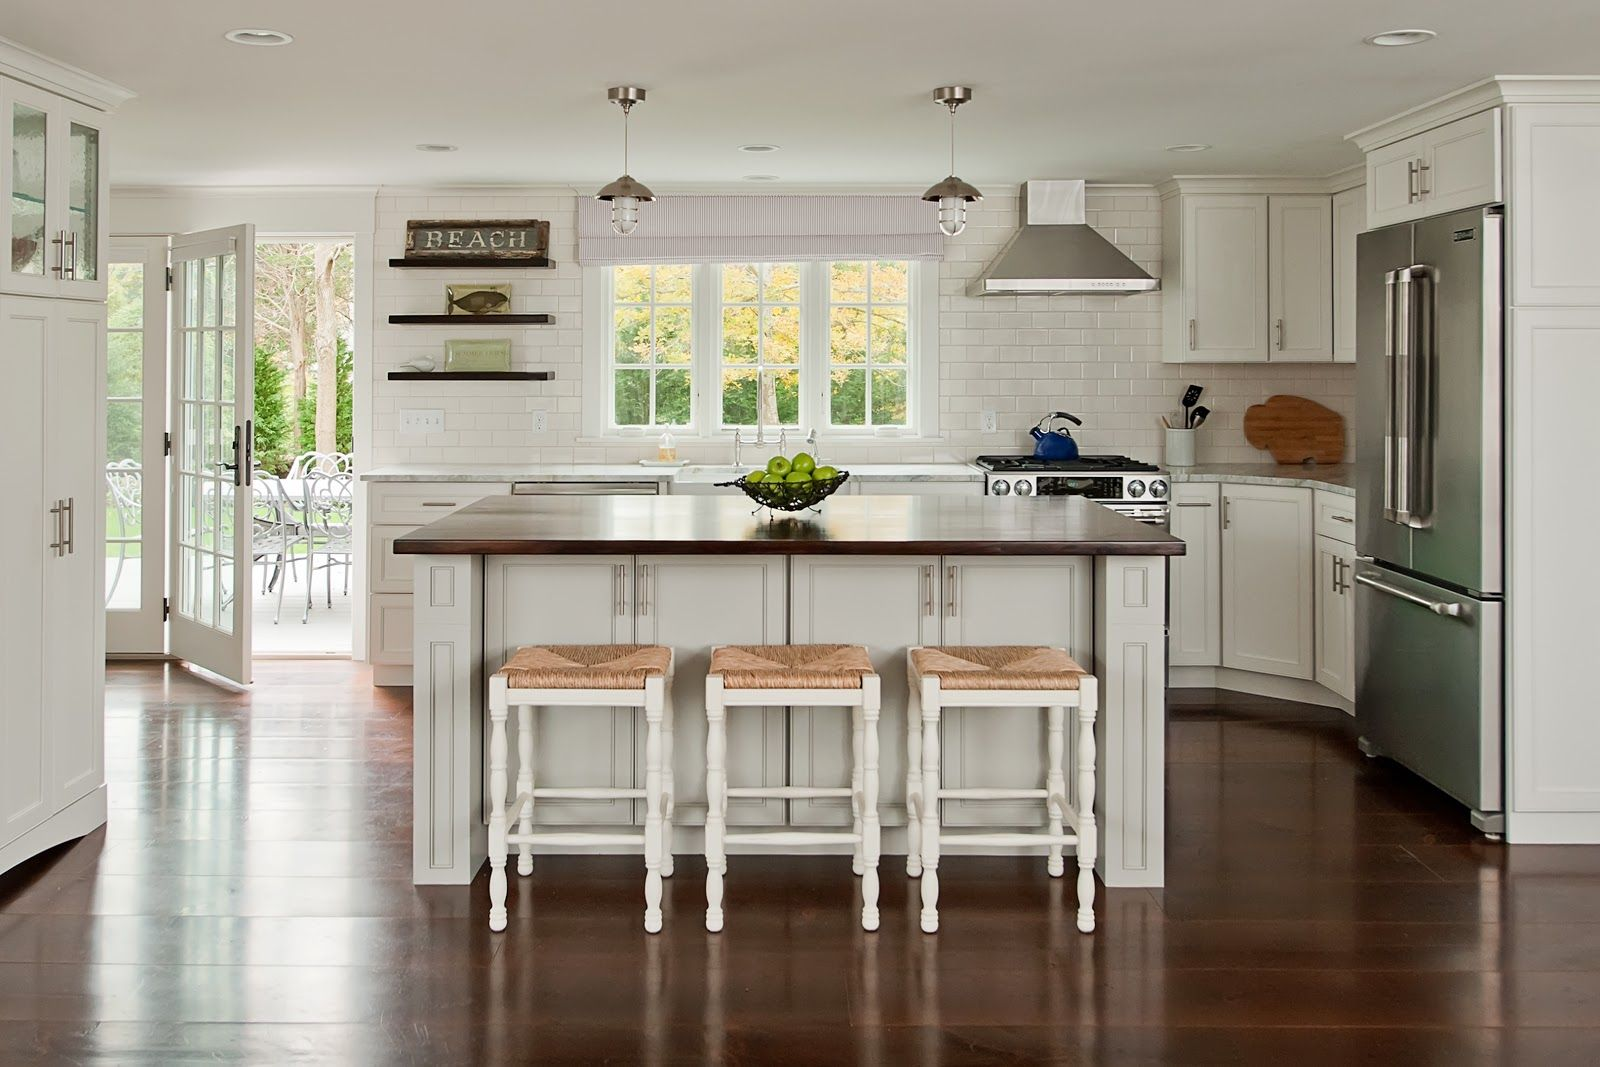 Small Cape Cod Kitchen Ideas White Can Be Very Hot Sprinkle In